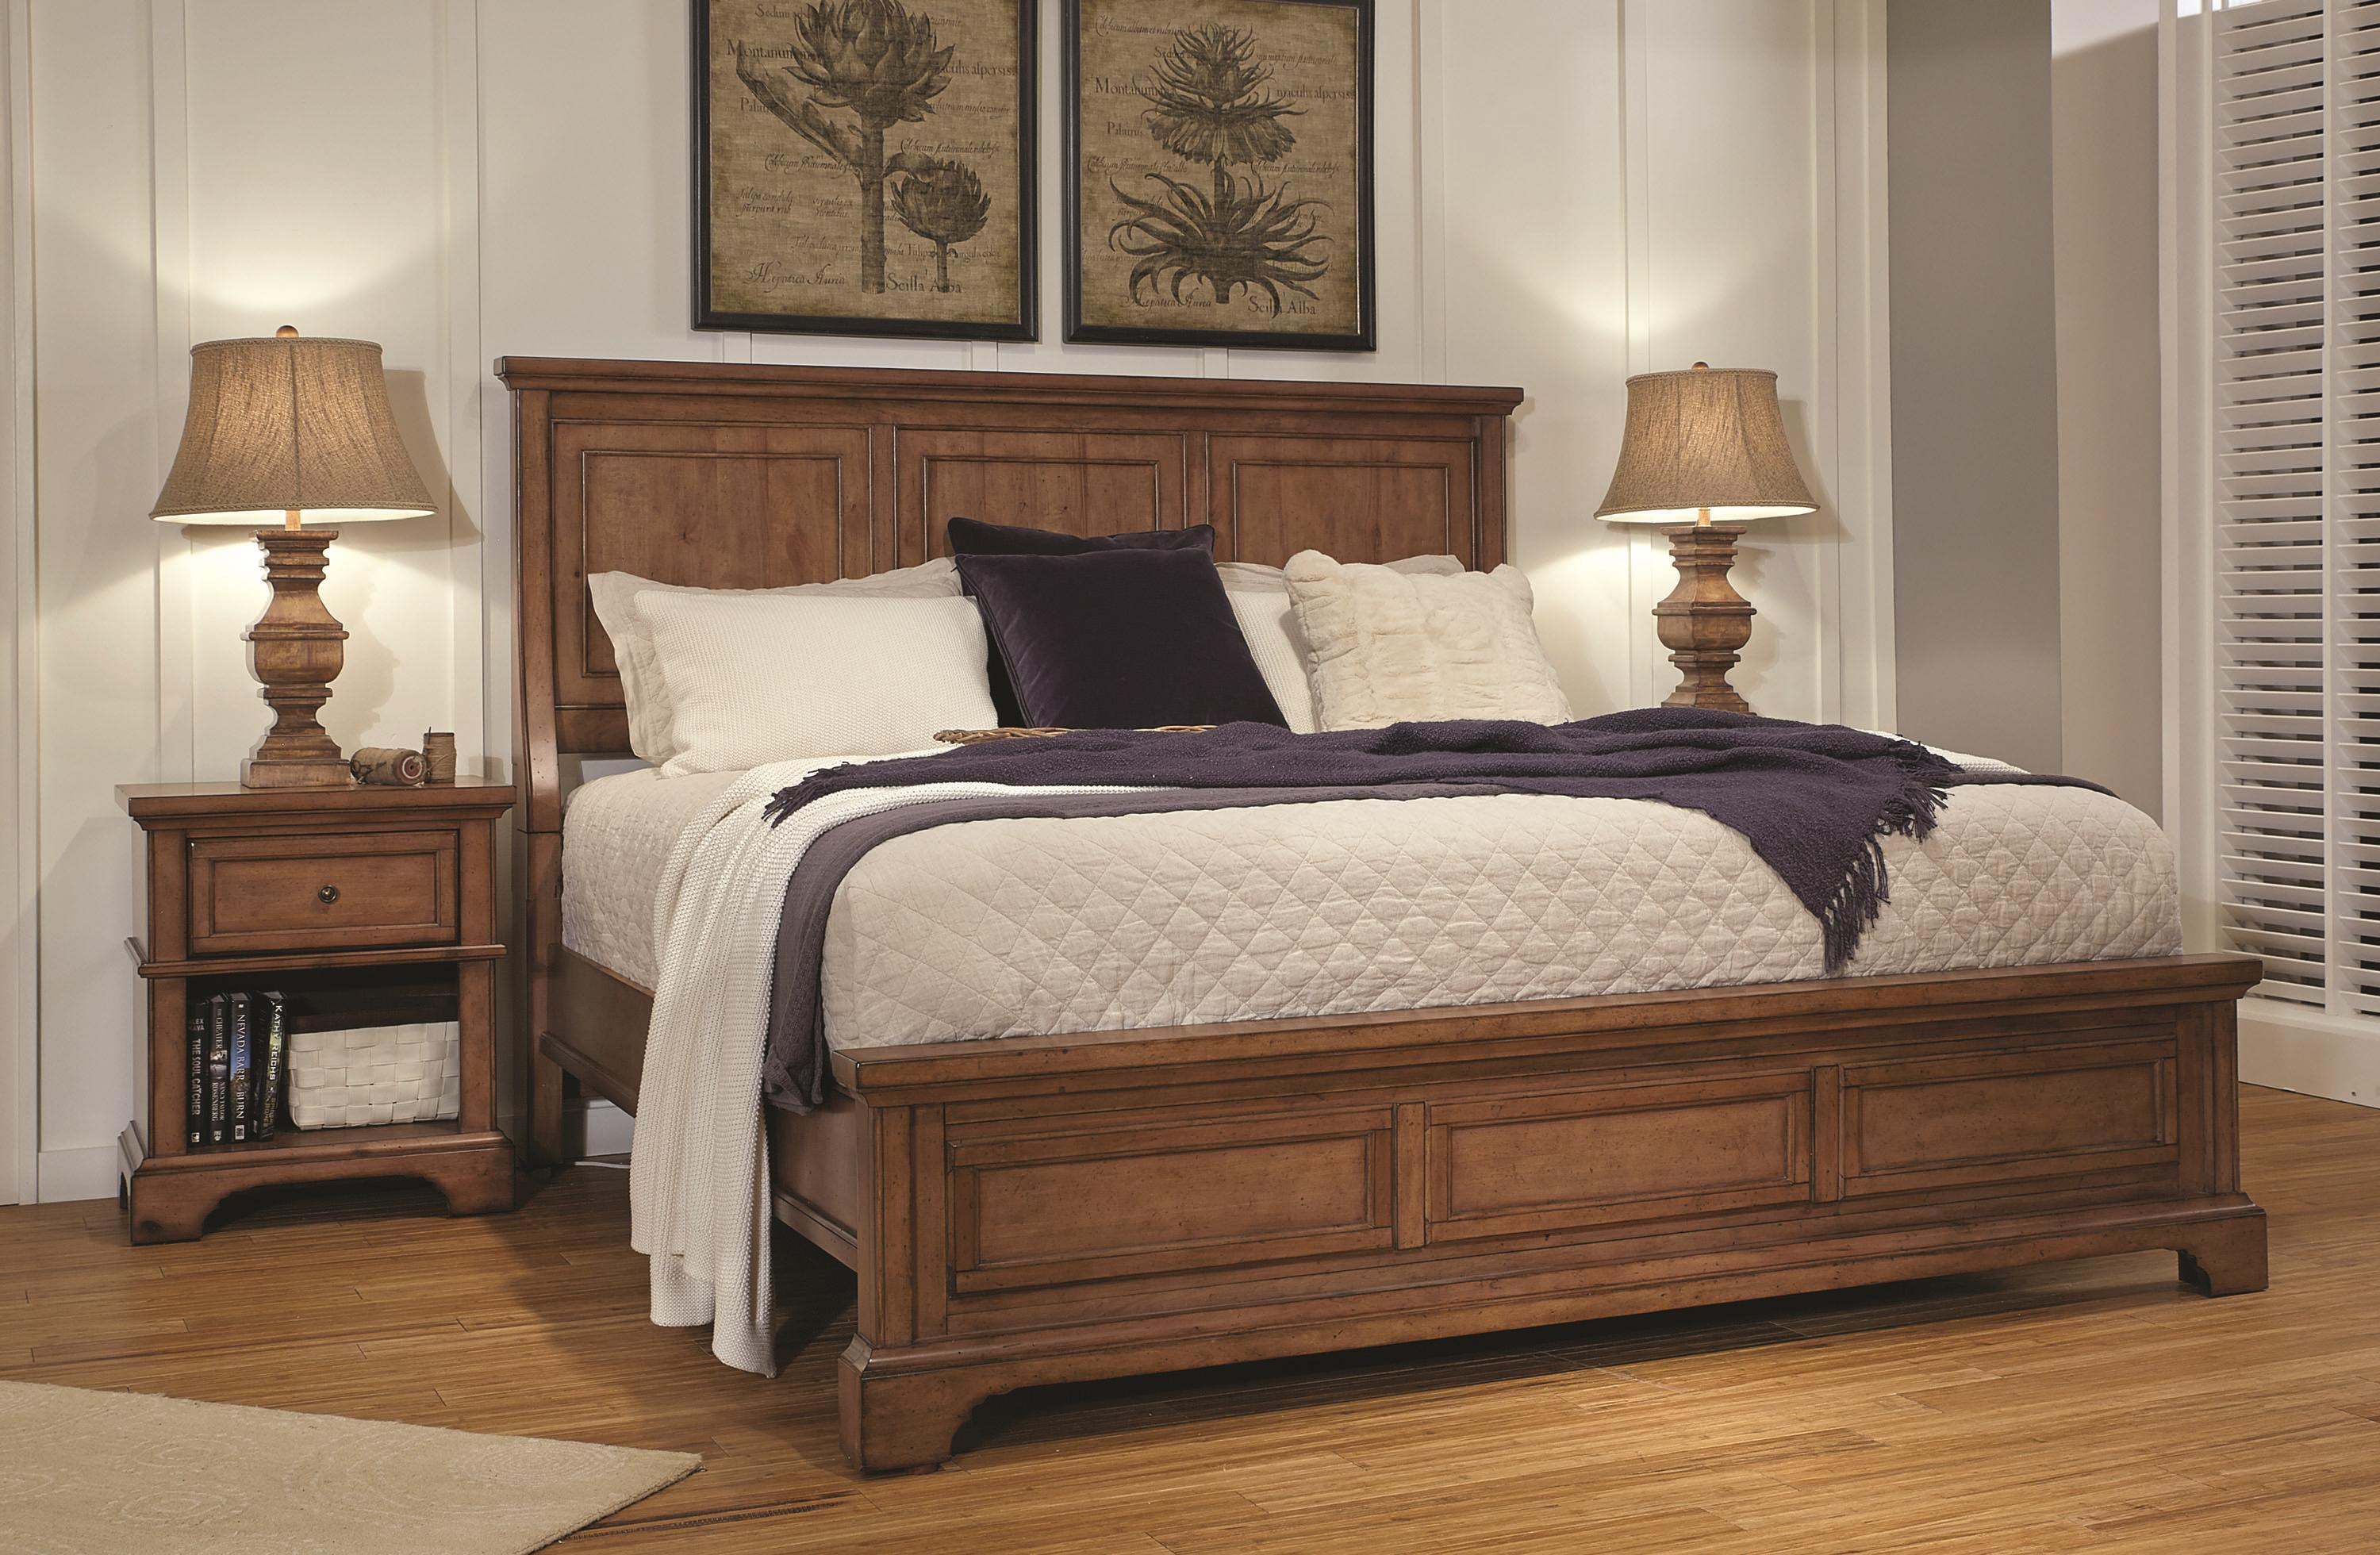 Alder Creek California King Bedroom Group 3 by Aspenhome at Fashion Furniture